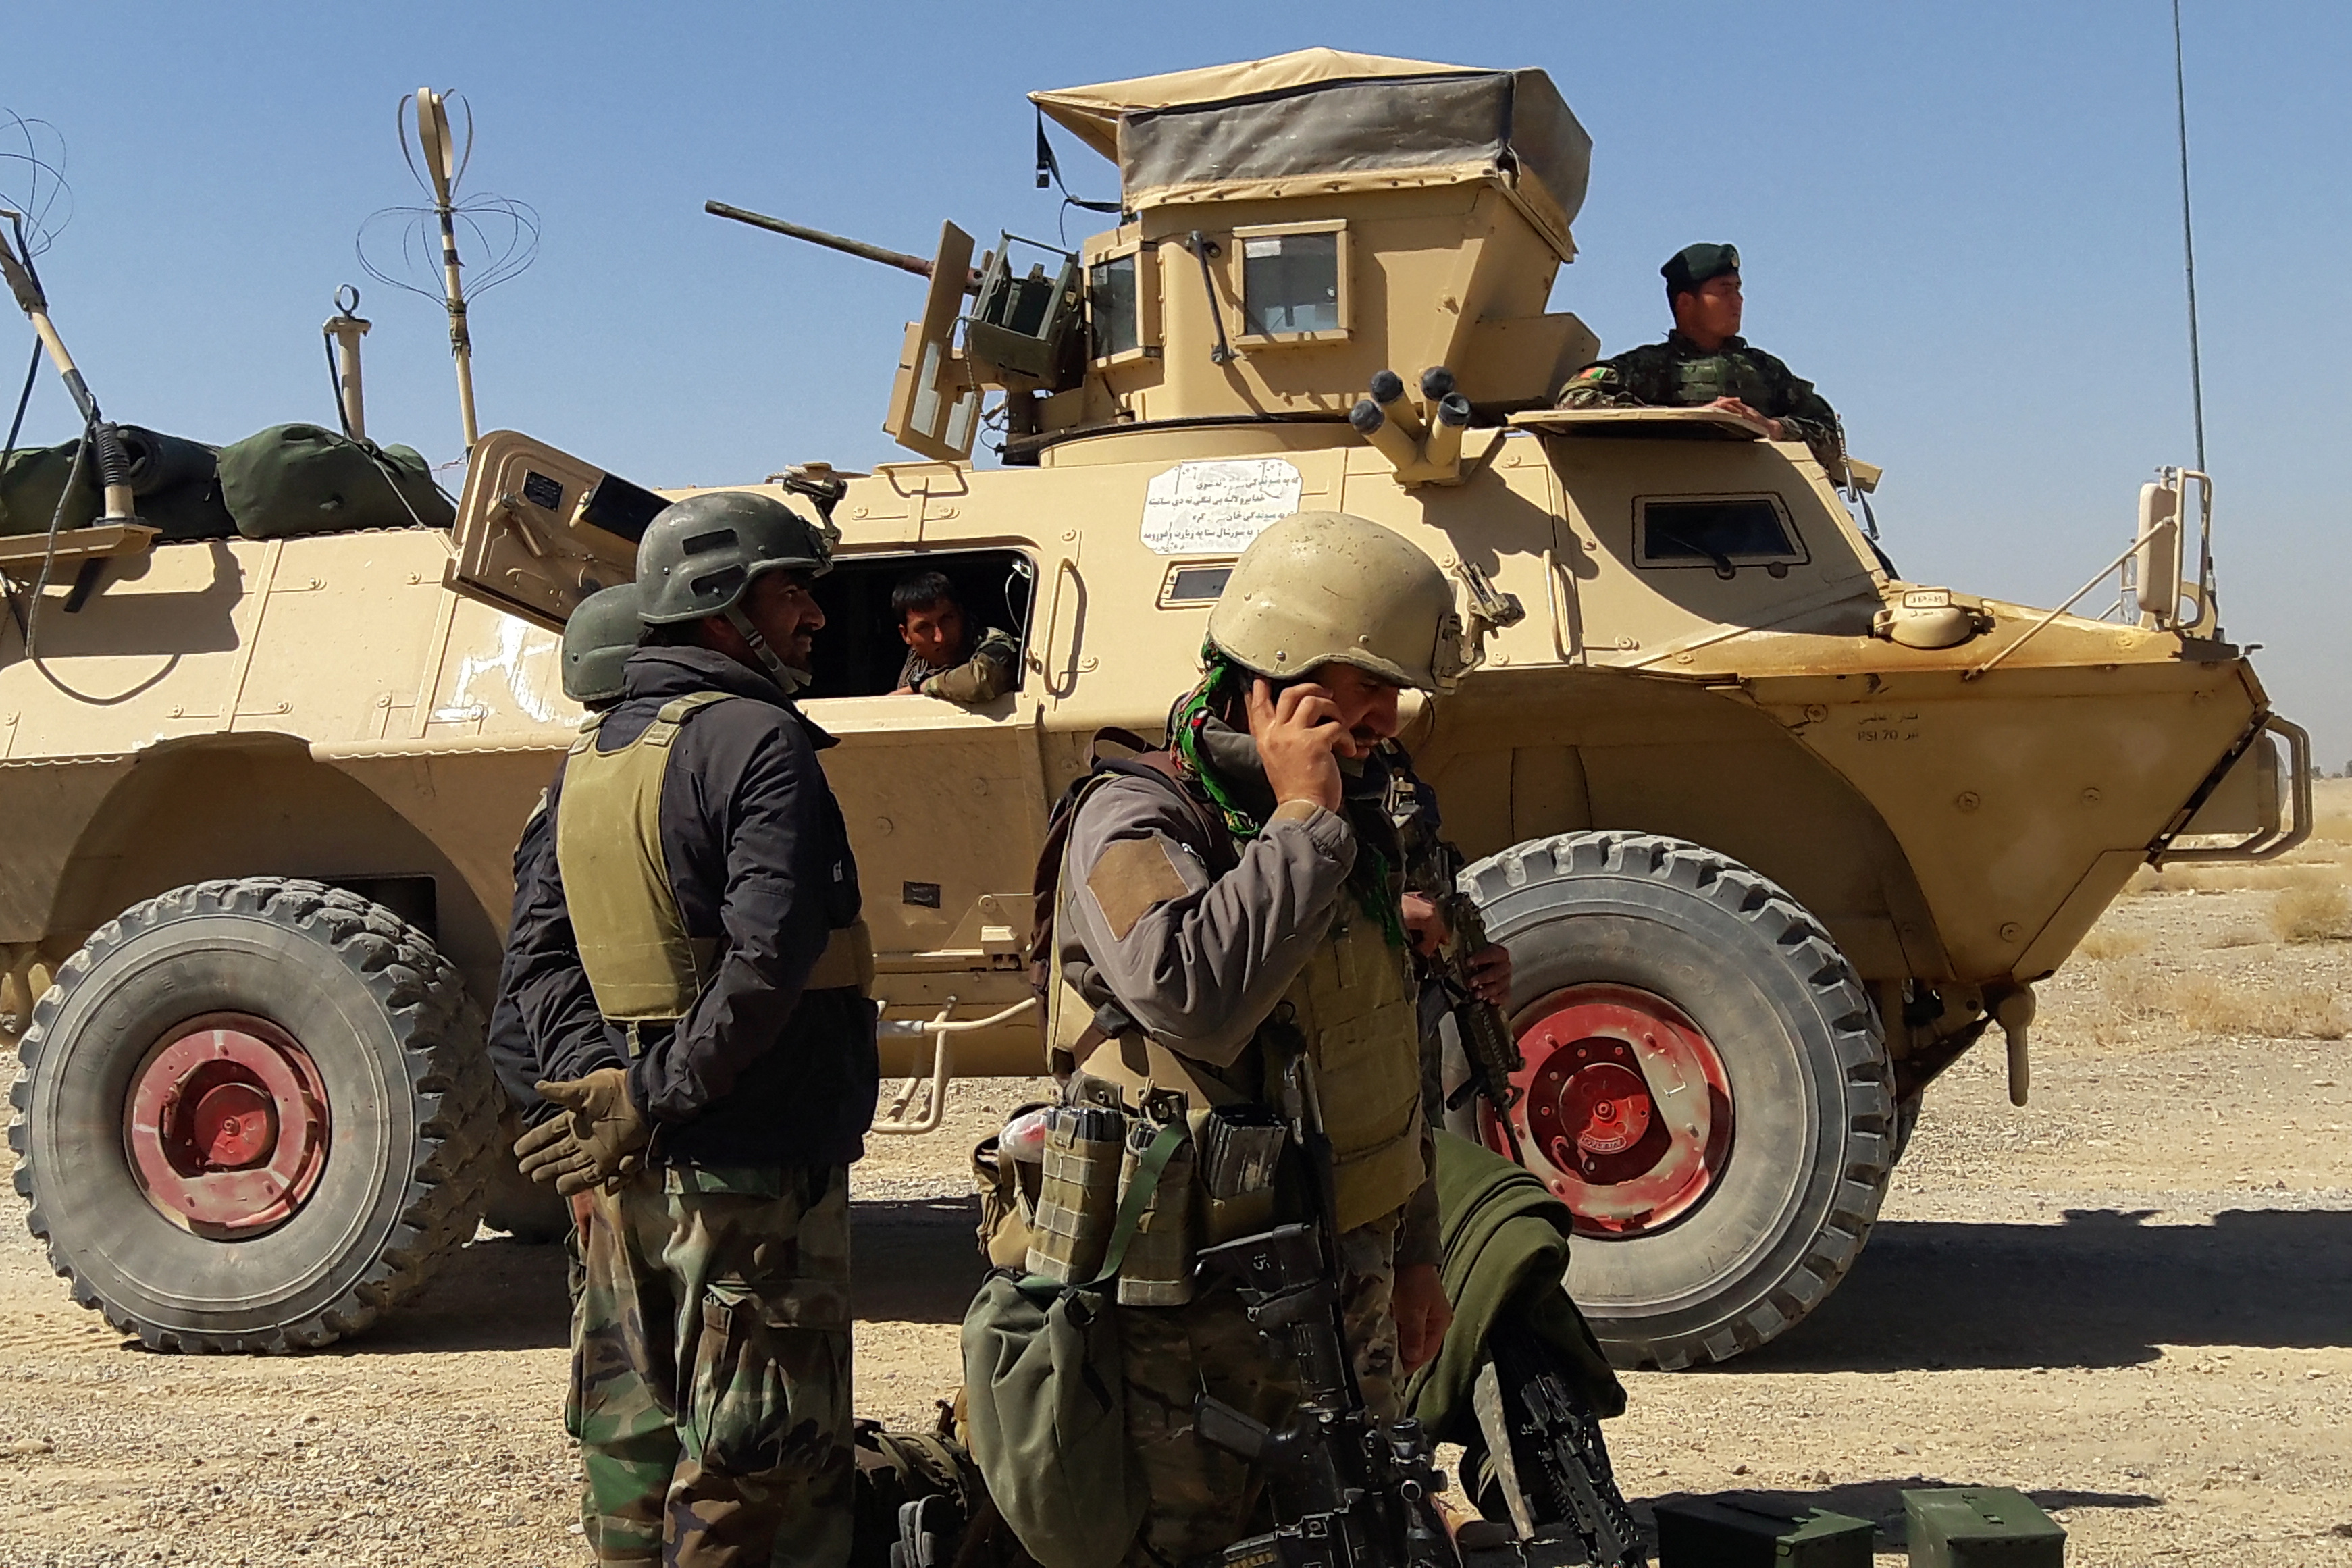 Afghan security forces stand near an armoured vehicle during ongoing fighting between Afghan security forces and Taliban fighters in the Busharan area on the outskirts of Lashkar Gah, the capital city of Helmand province. (Photo by SIFATULLAH ZAHIDI/AFP via Getty Images)